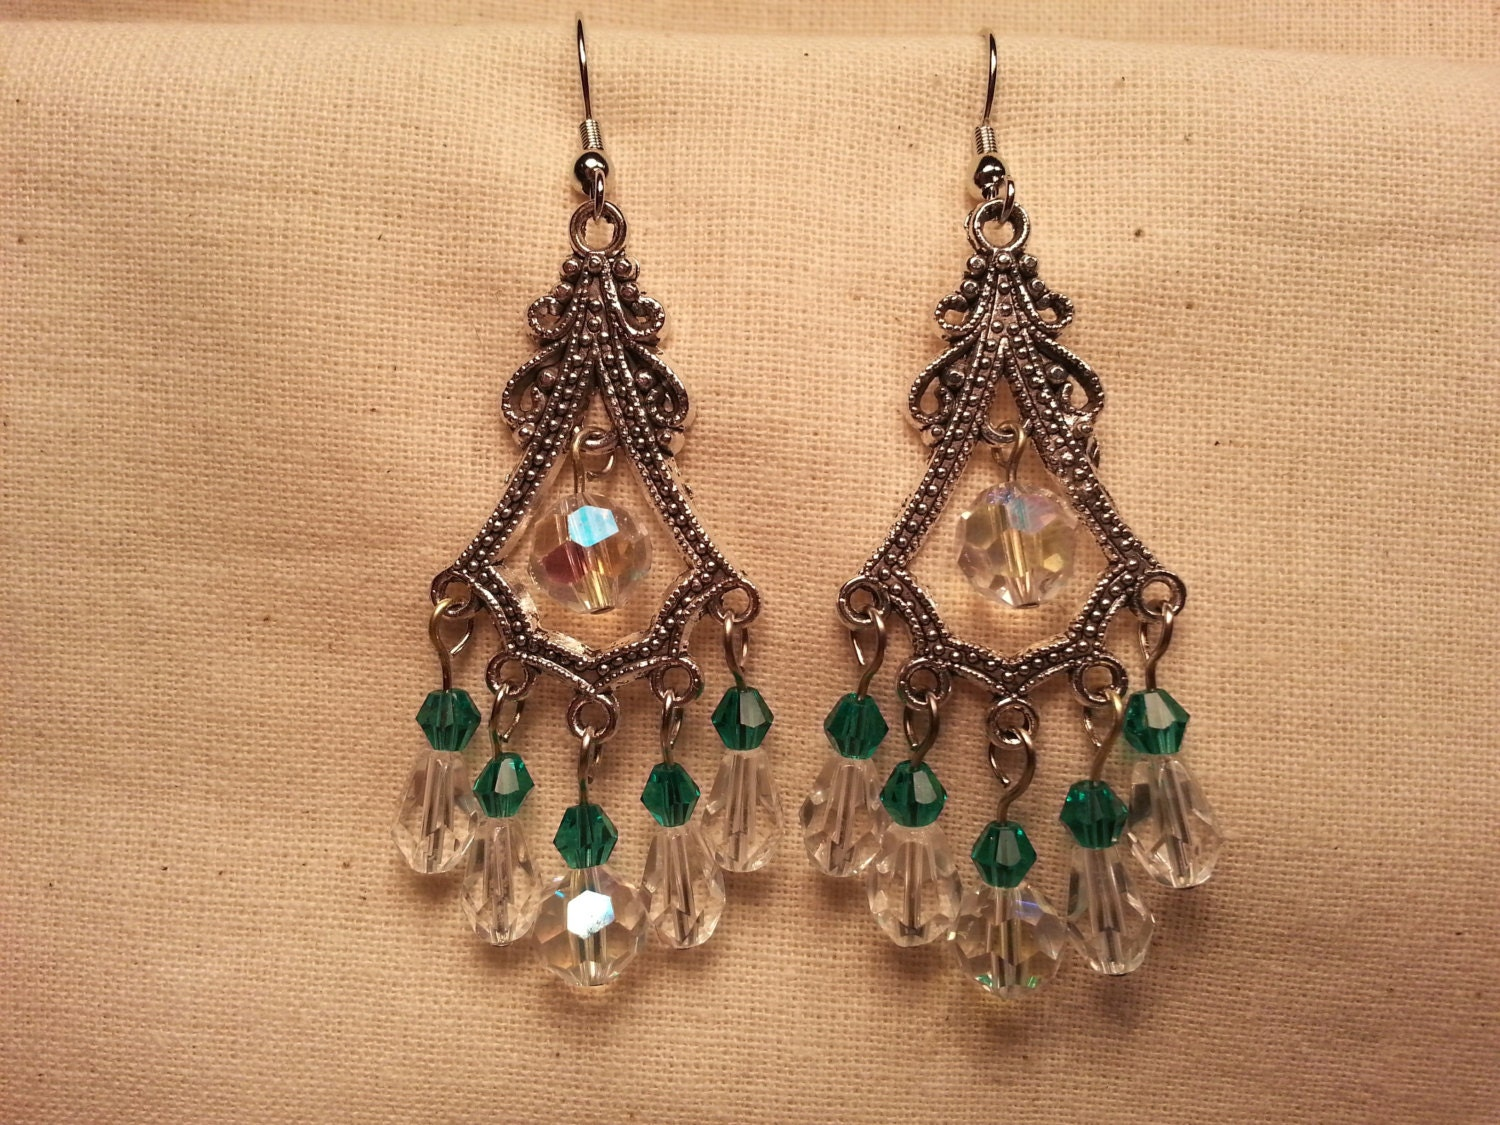 Chandelier Earrings of Green and Crystal Glass by ...